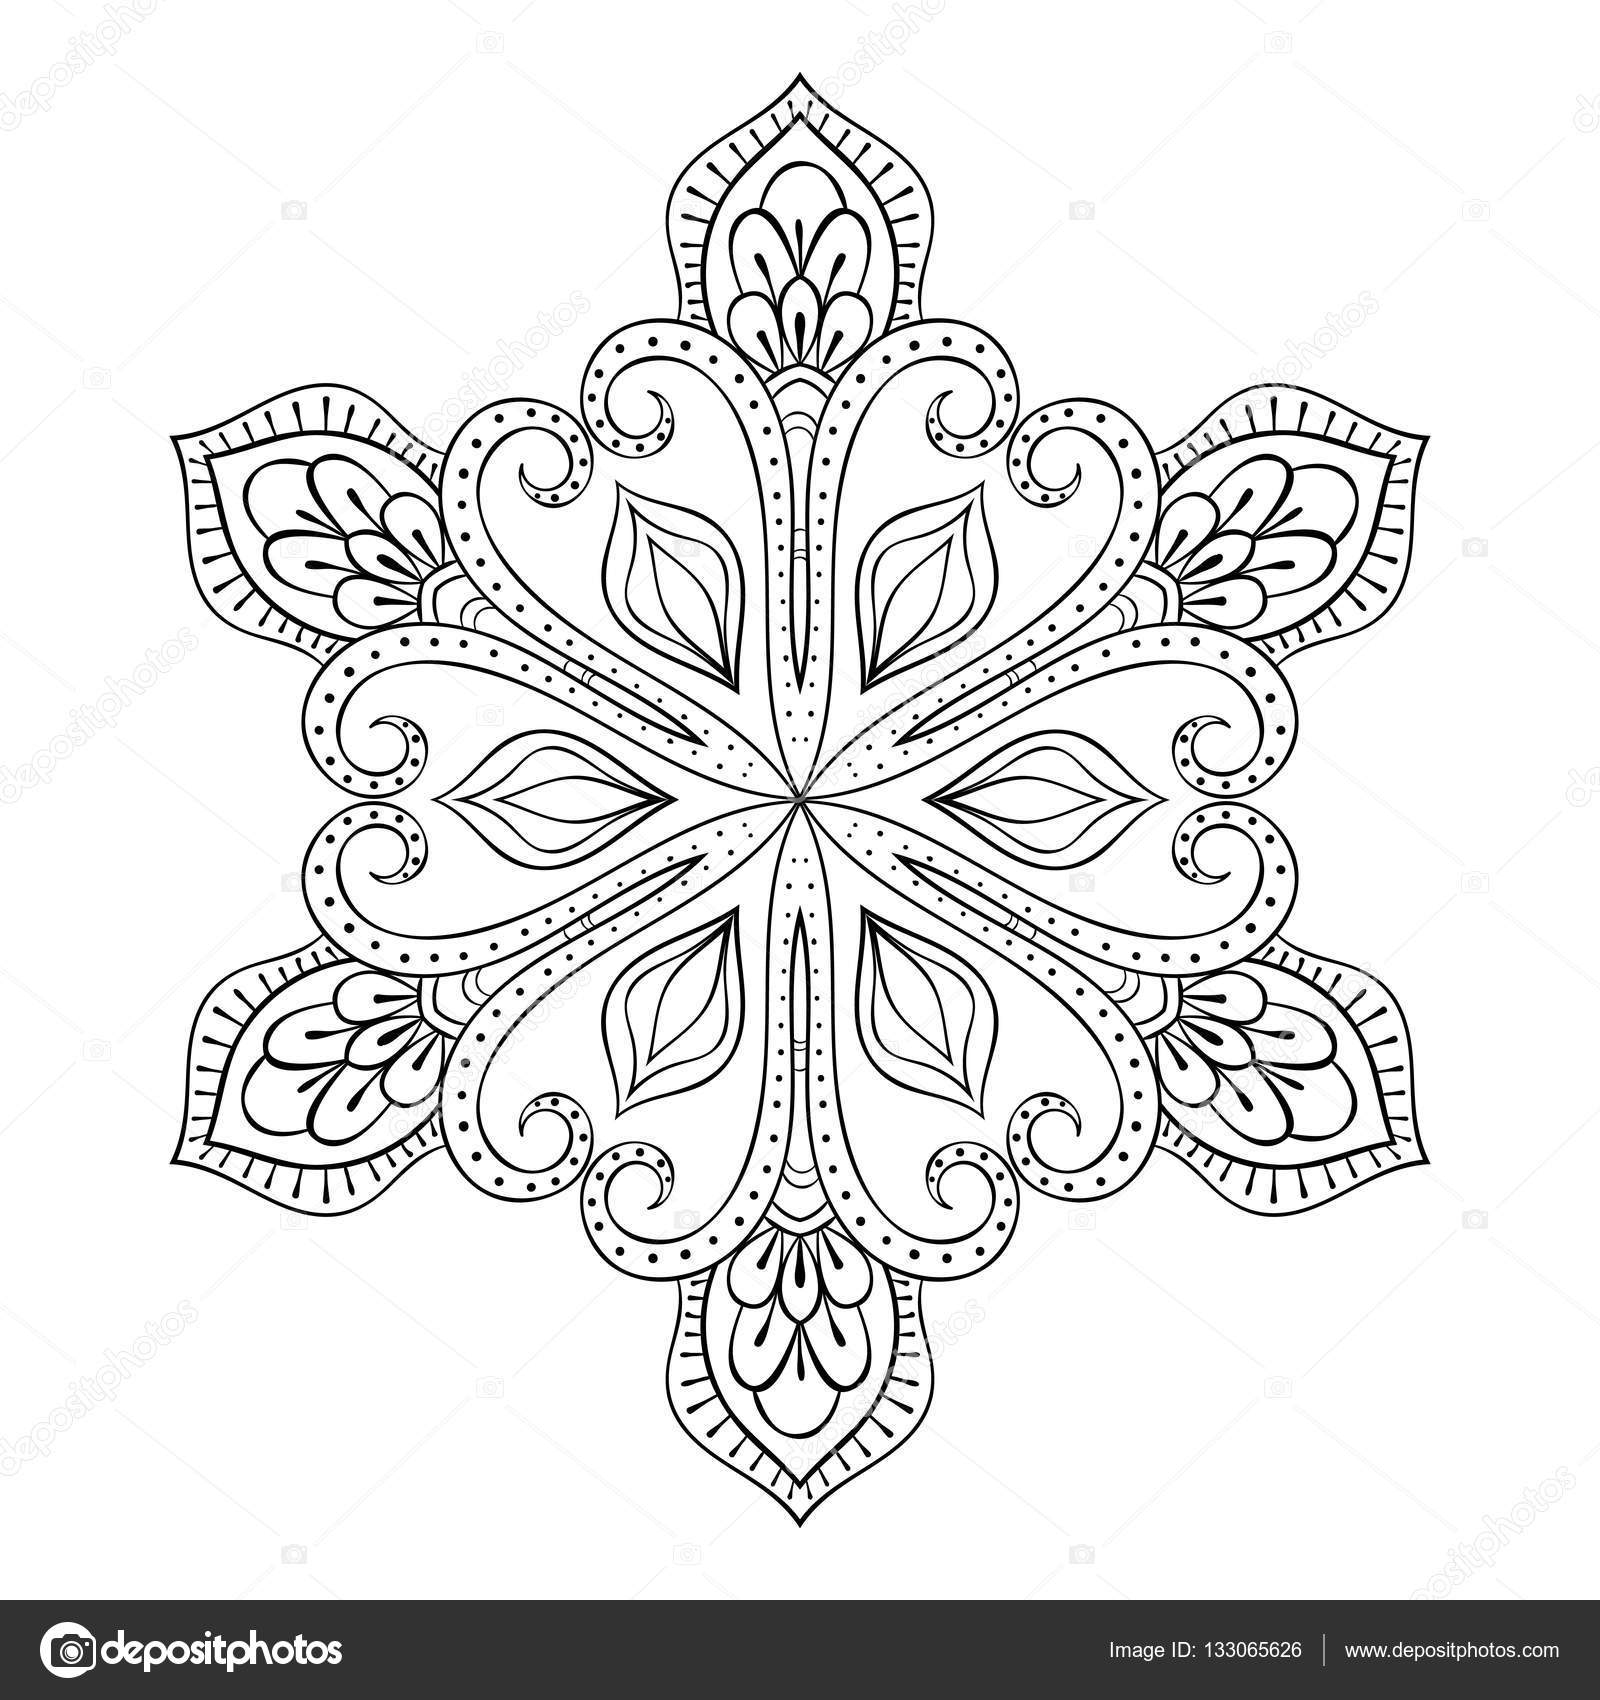 Vector Snow Flake In Zentangle Style Doodle Mandala For Adult Coloring Pages Ornamental Winter